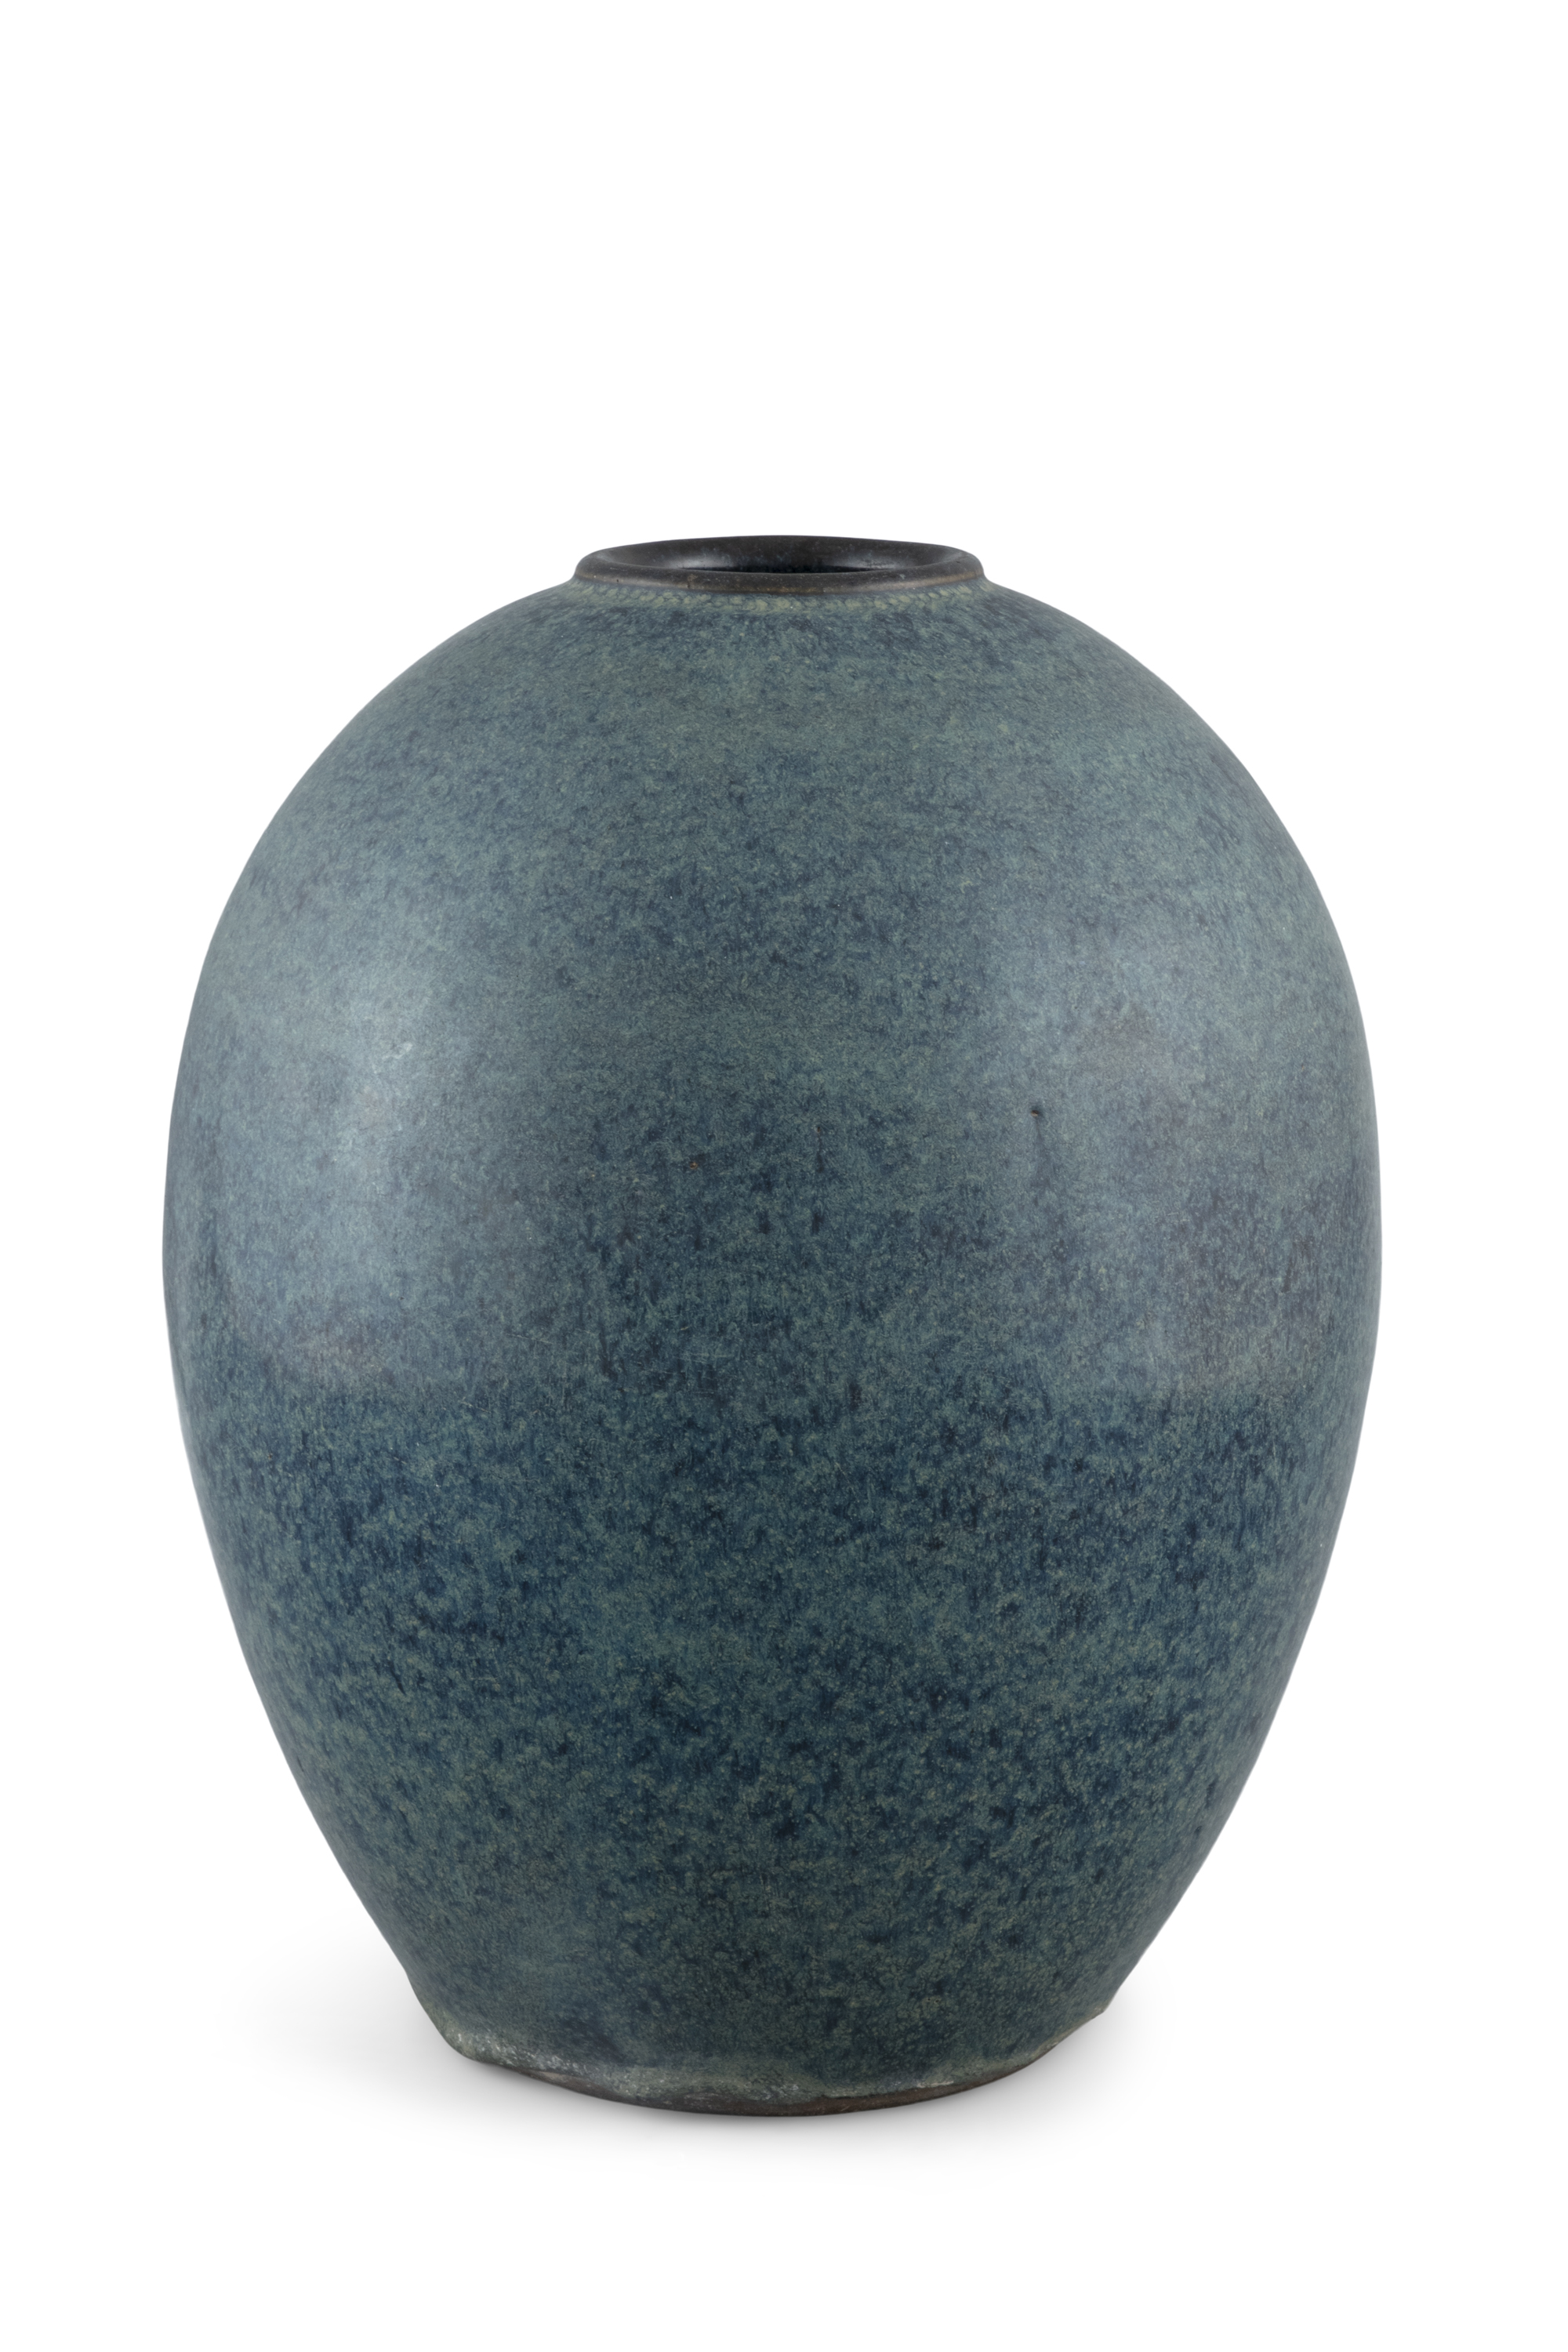 A ROBIN'S EGG GLAZED YIXING VASE BEARING THE SEAL OF GE MINGXIANG 葛明祥 China, 18th century or later